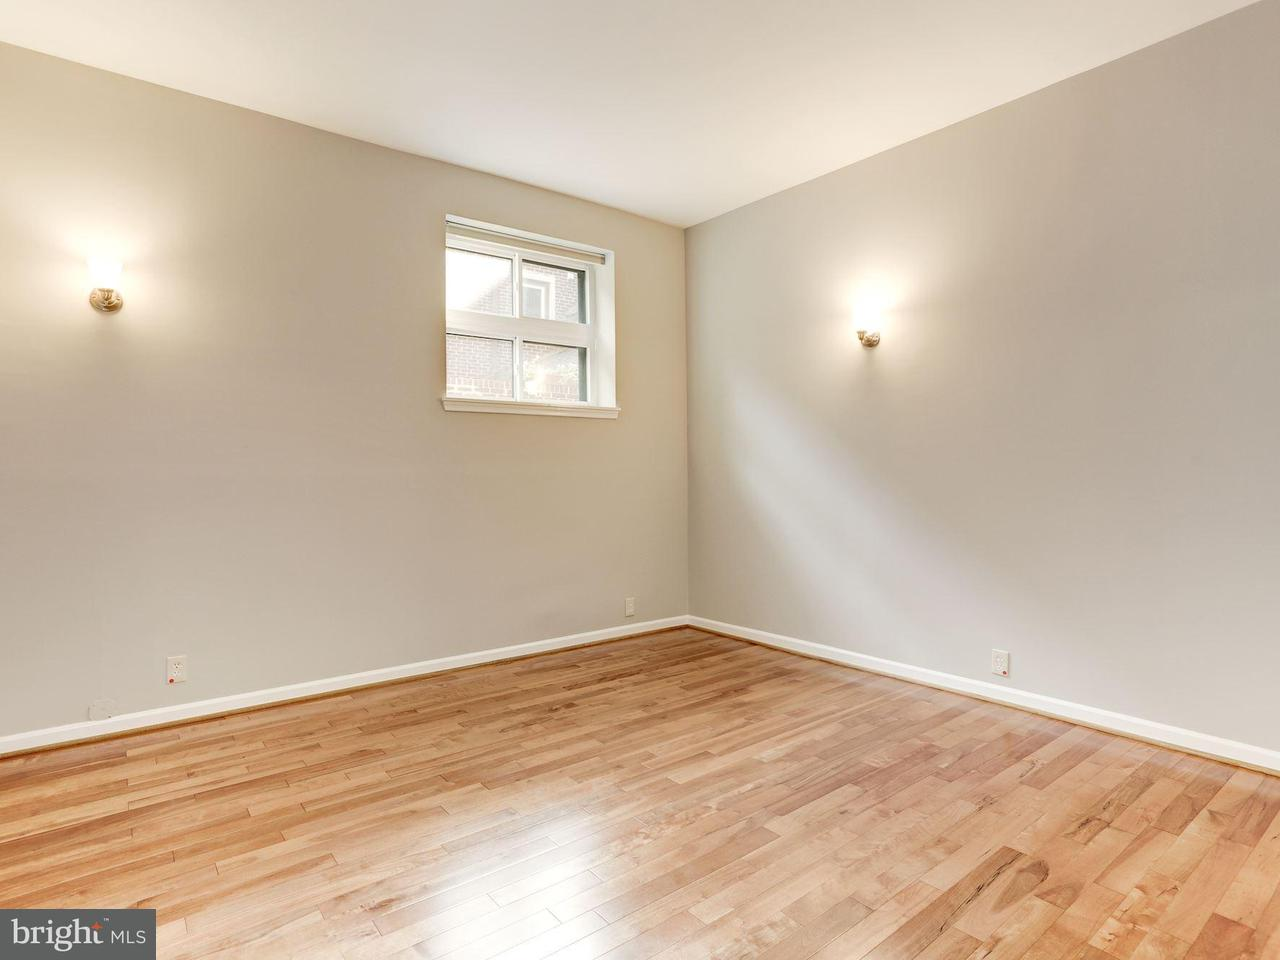 Additional photo for property listing at 1715 15th St Nw #103 1715 15th St Nw #103 华盛顿市, 哥伦比亚特区 20009 美国